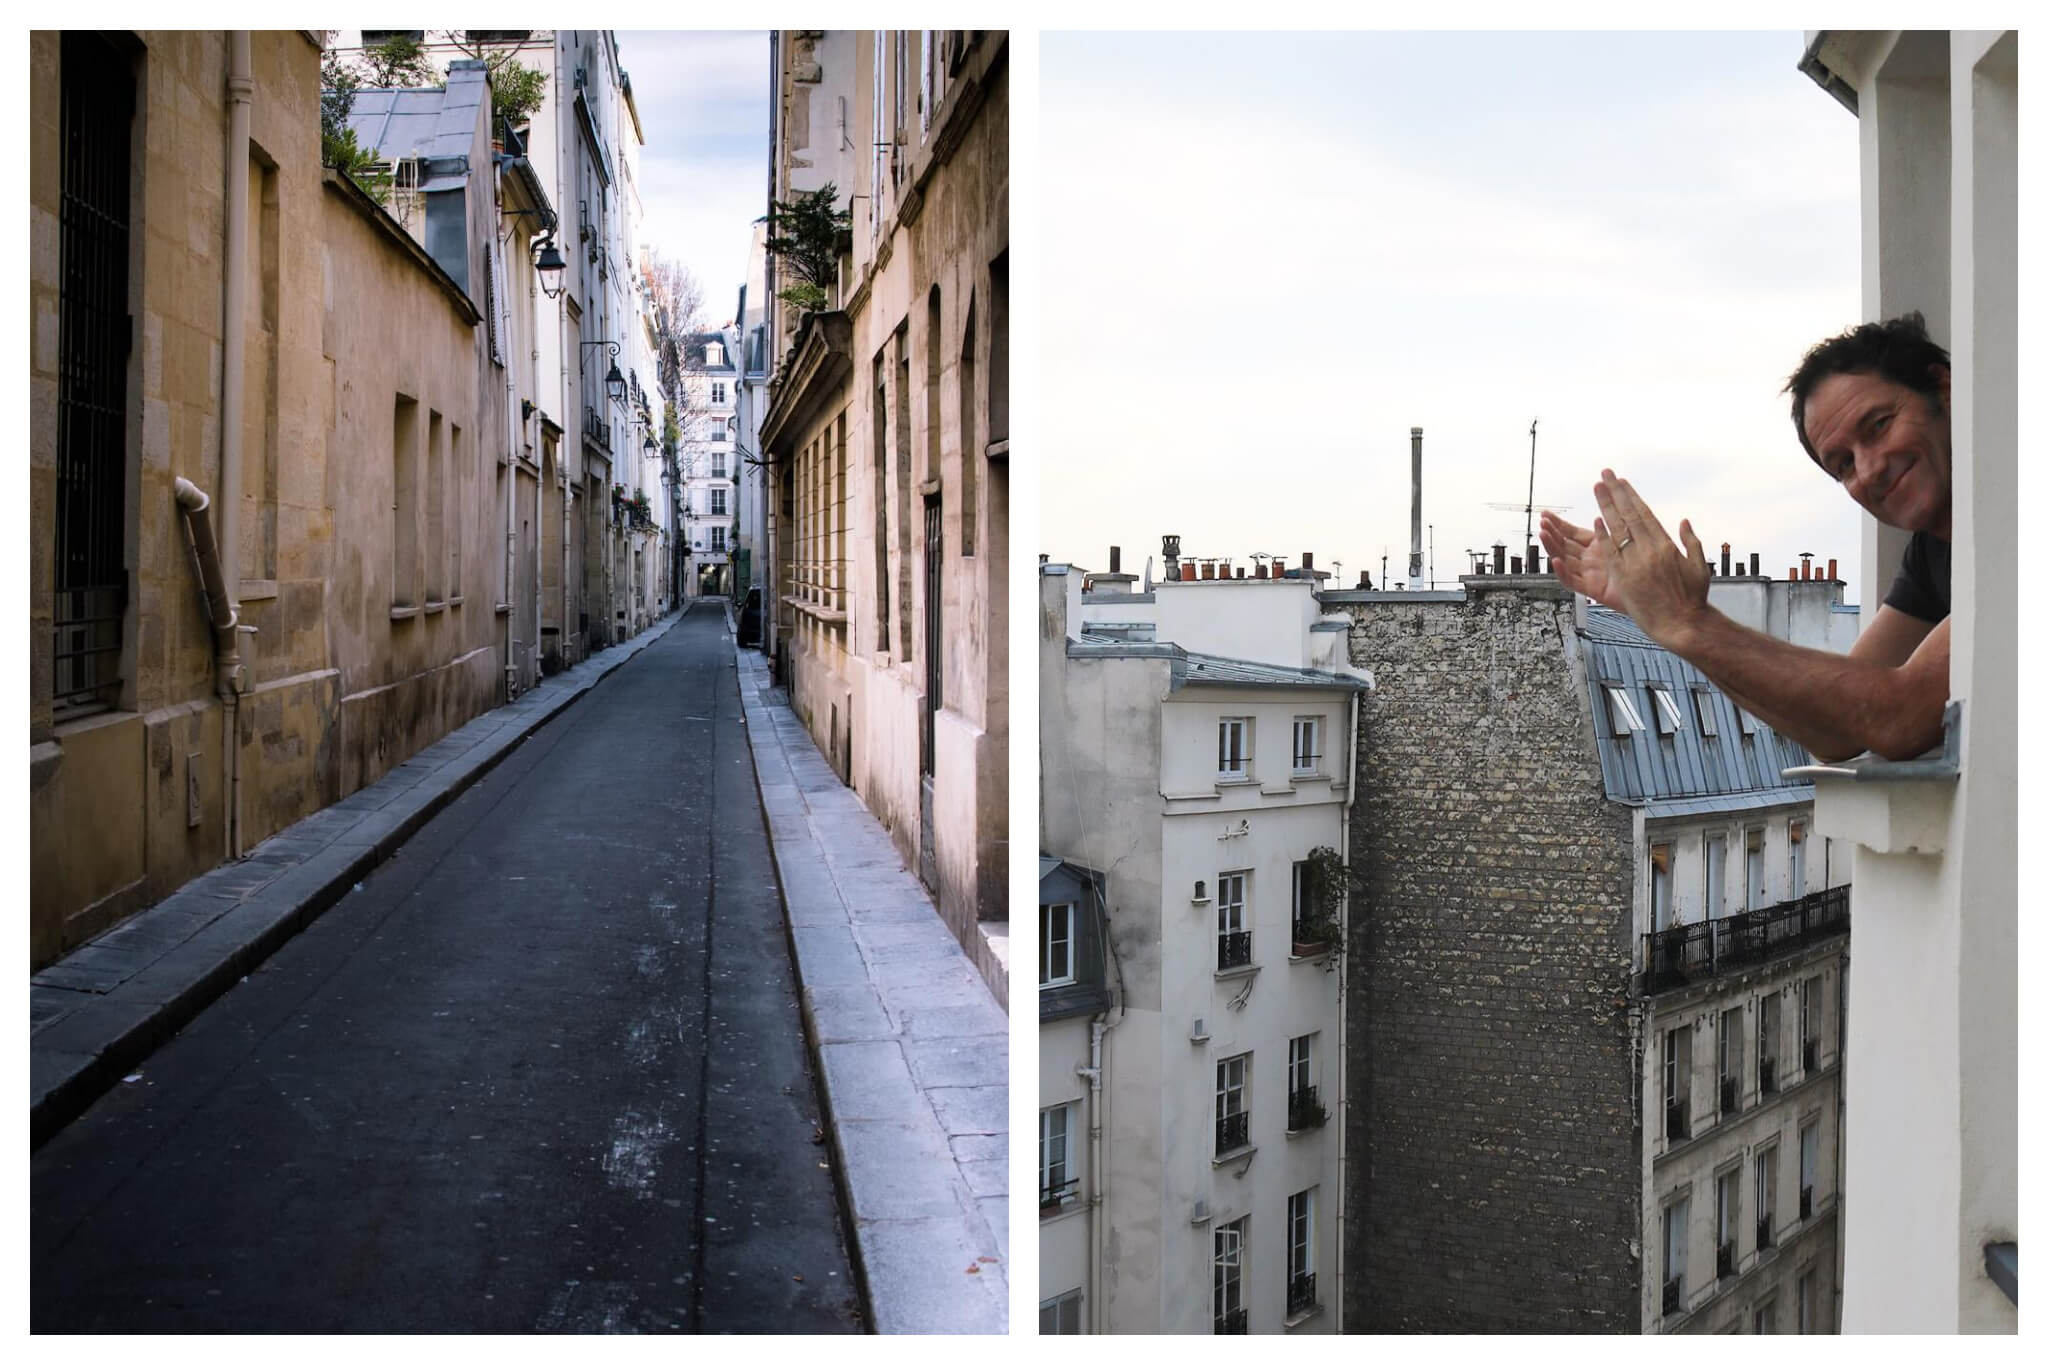 Left: An empty street in Paris, with apartments lining the sides of the row. There are no cars in the street and no people on the narrow sidewalks. Right: A man smiles and claps for the healthcare workers while looking out his Paris apartment window, apartments and rooftops can be seen in the background.